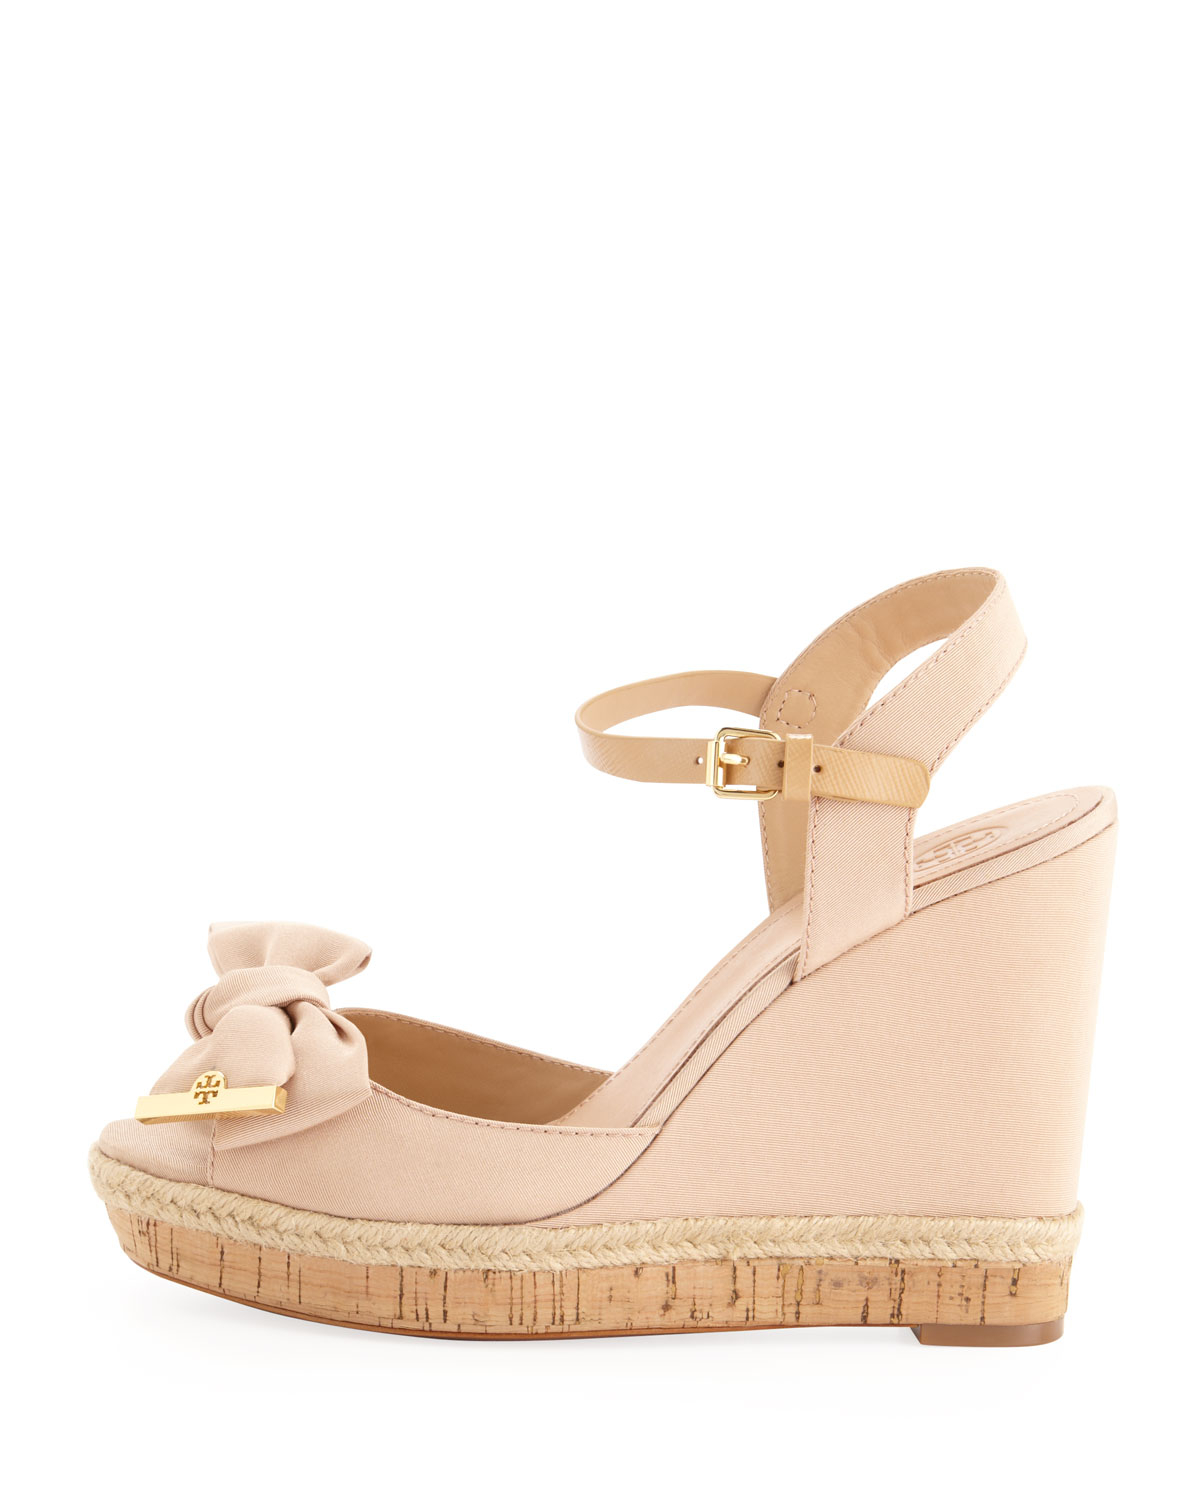 Tory Burch Penny Faille Bow Wedge In Pink Camellia Pink